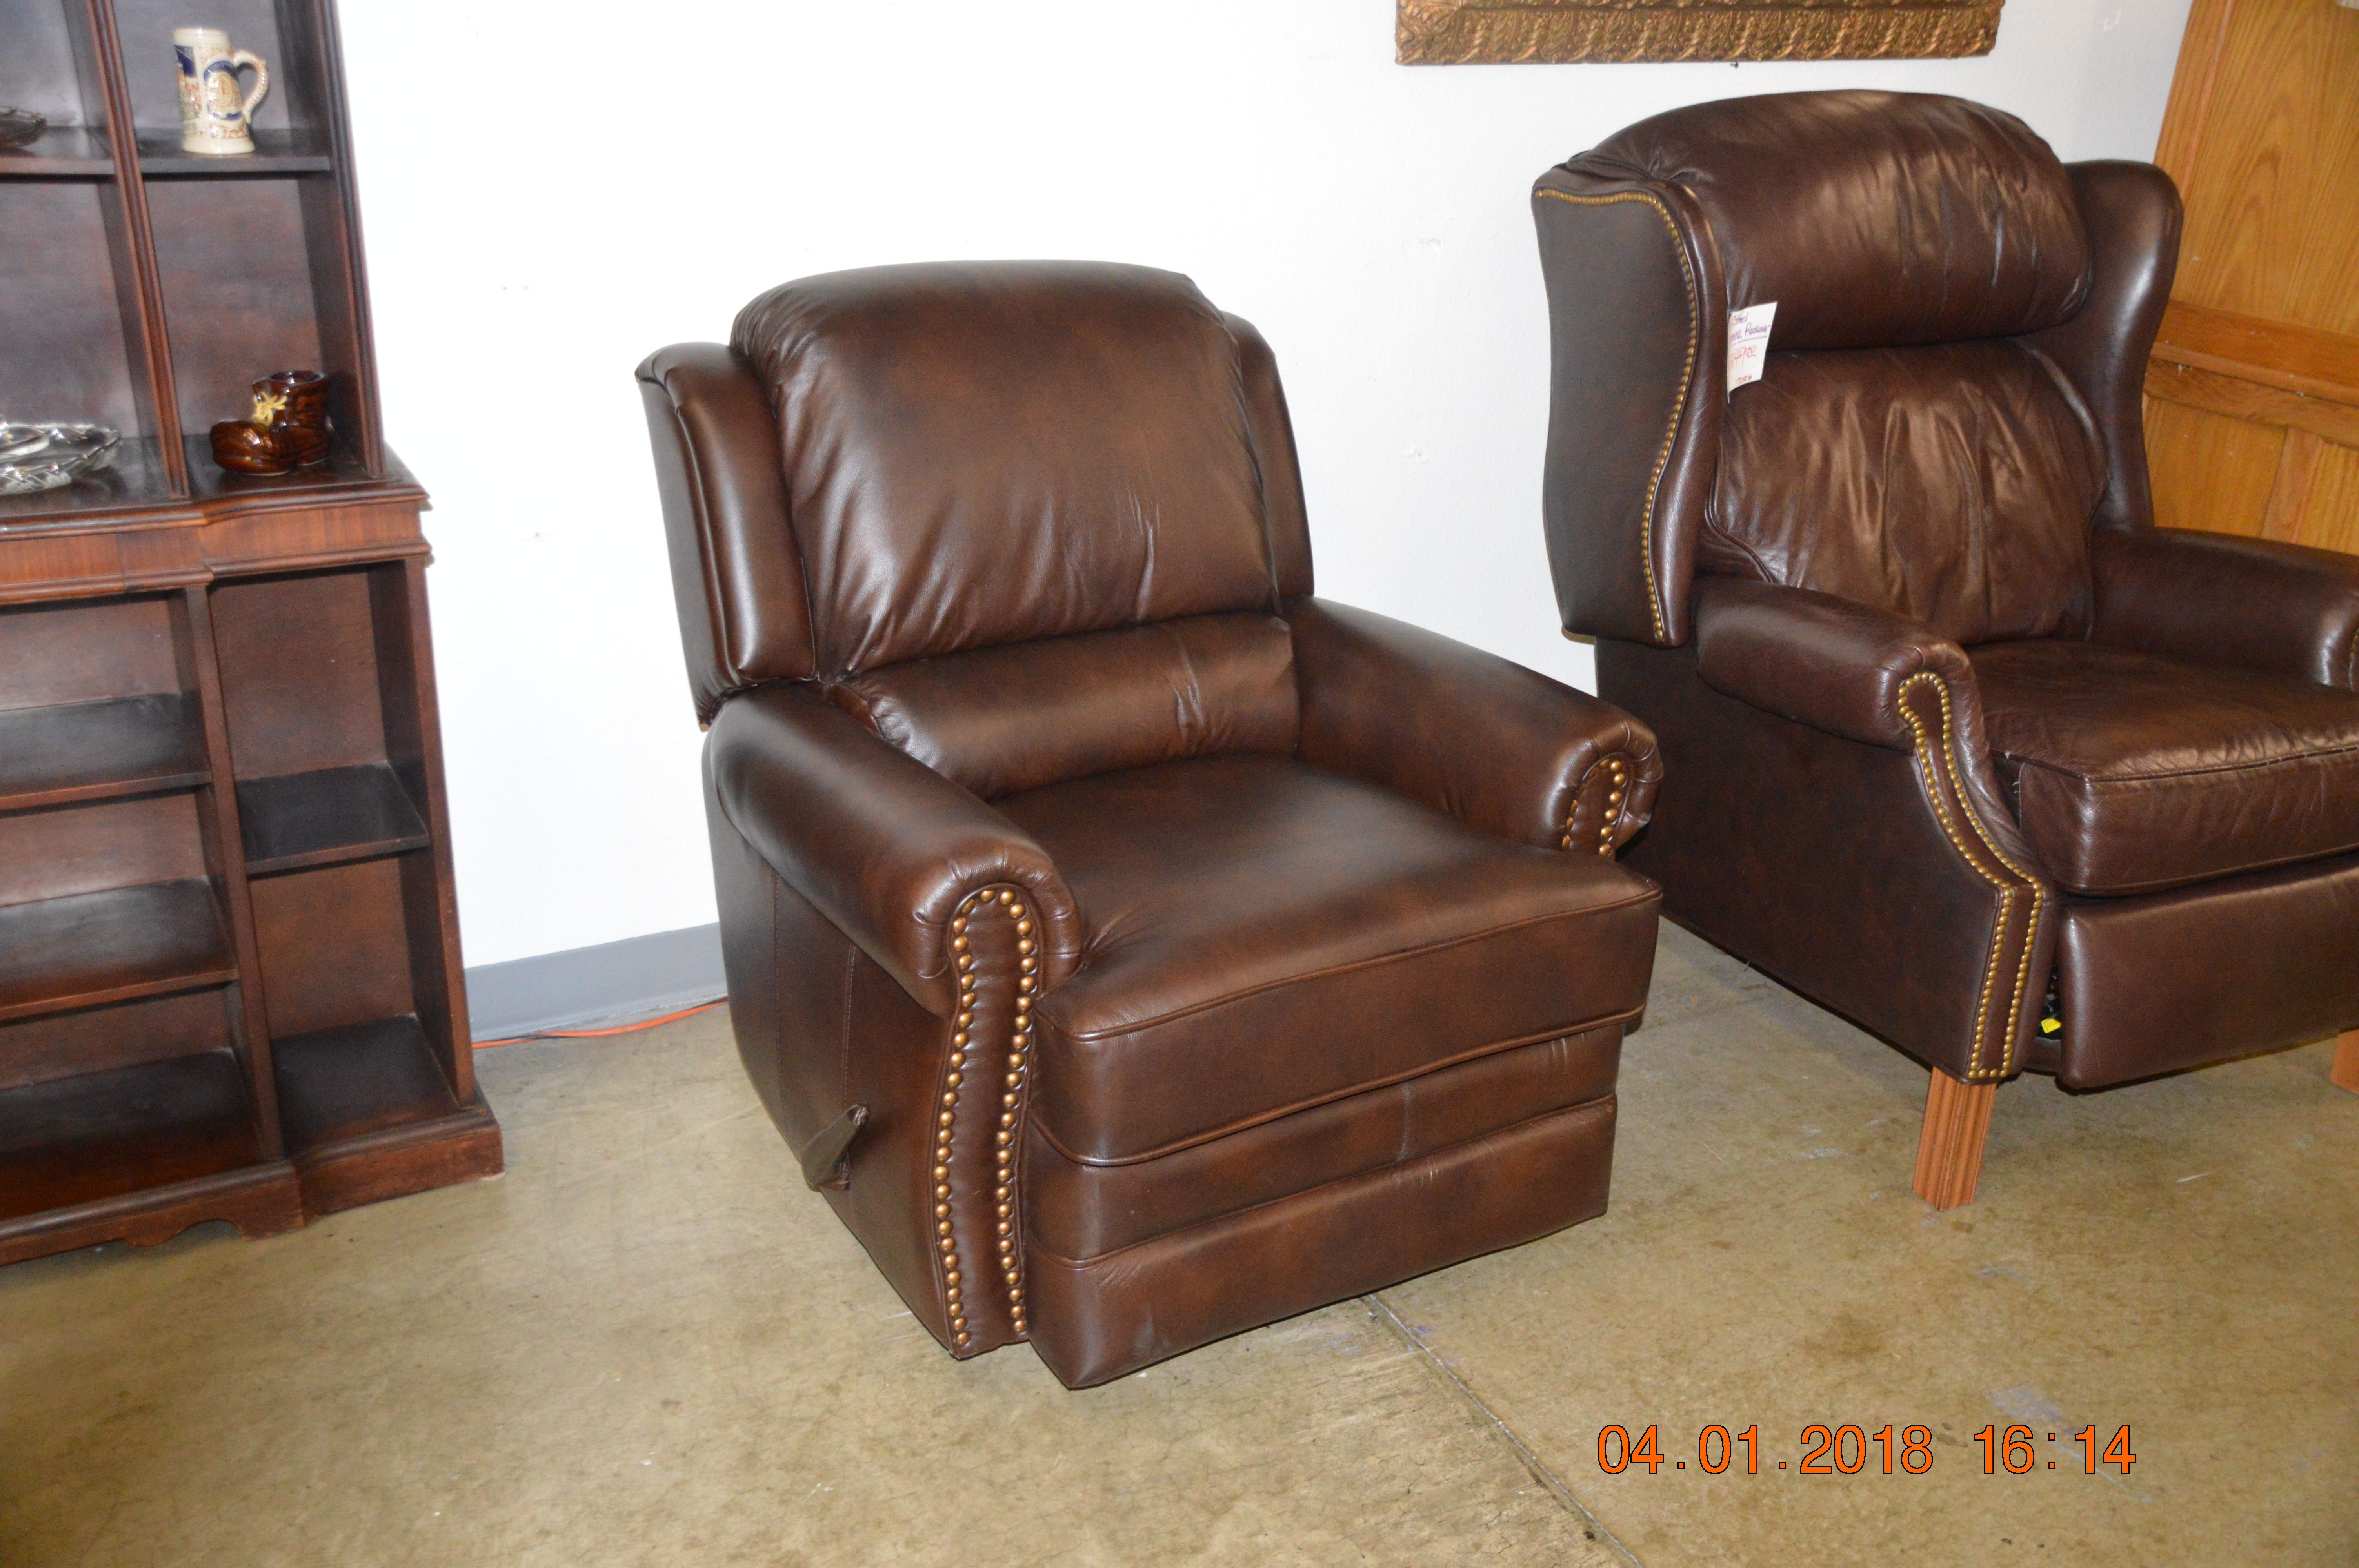 Leather Rocking Recliner Home decor, Furniture, Recliner